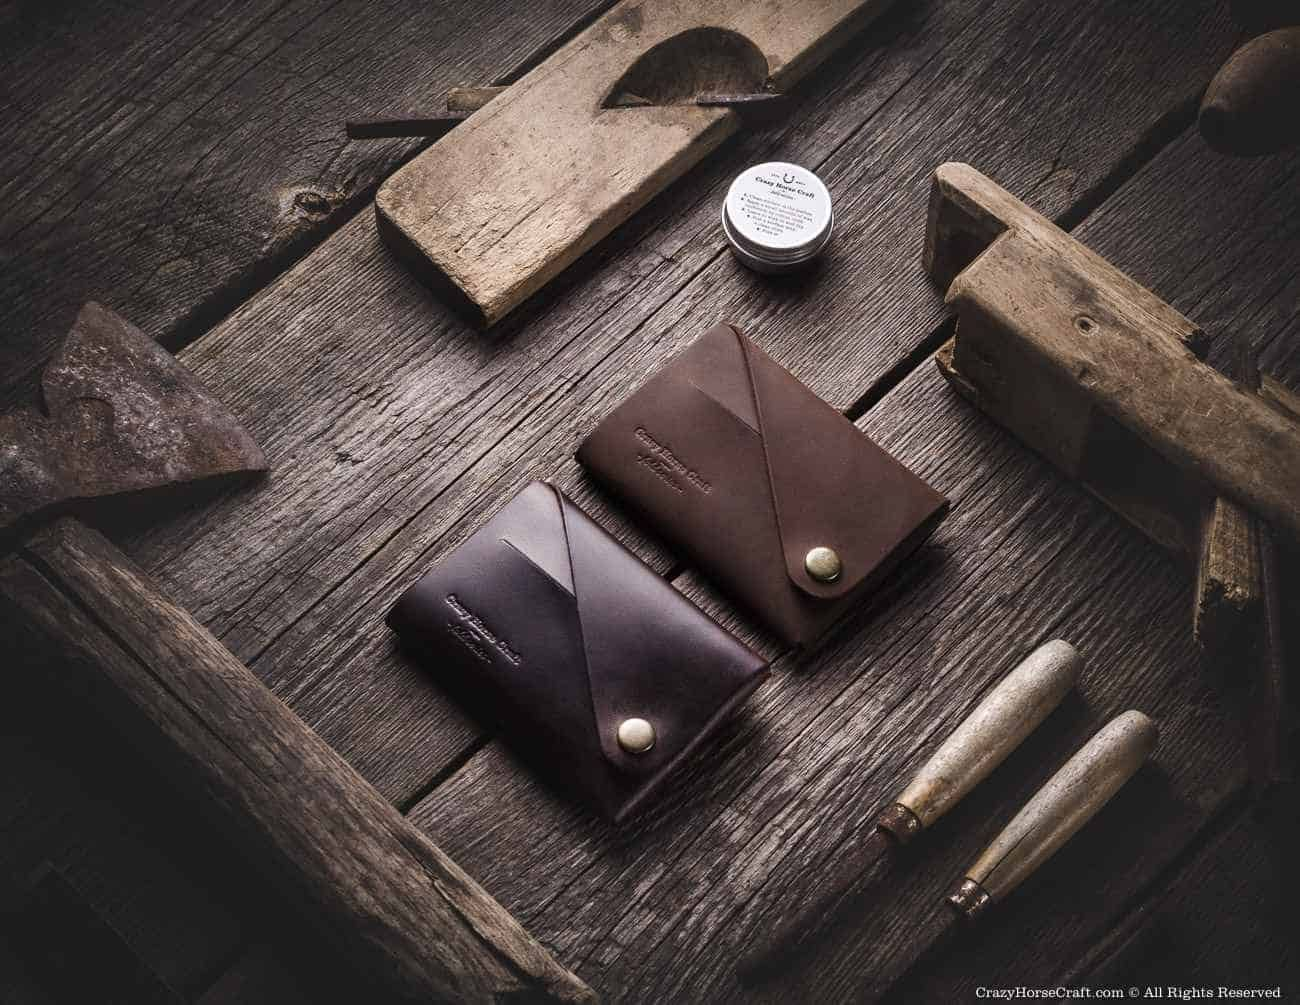 CRAZY HORSE CRAFT LEATHER GOODS Mensaxis.com | Leather wallet, Leather  gifts, Simple leather